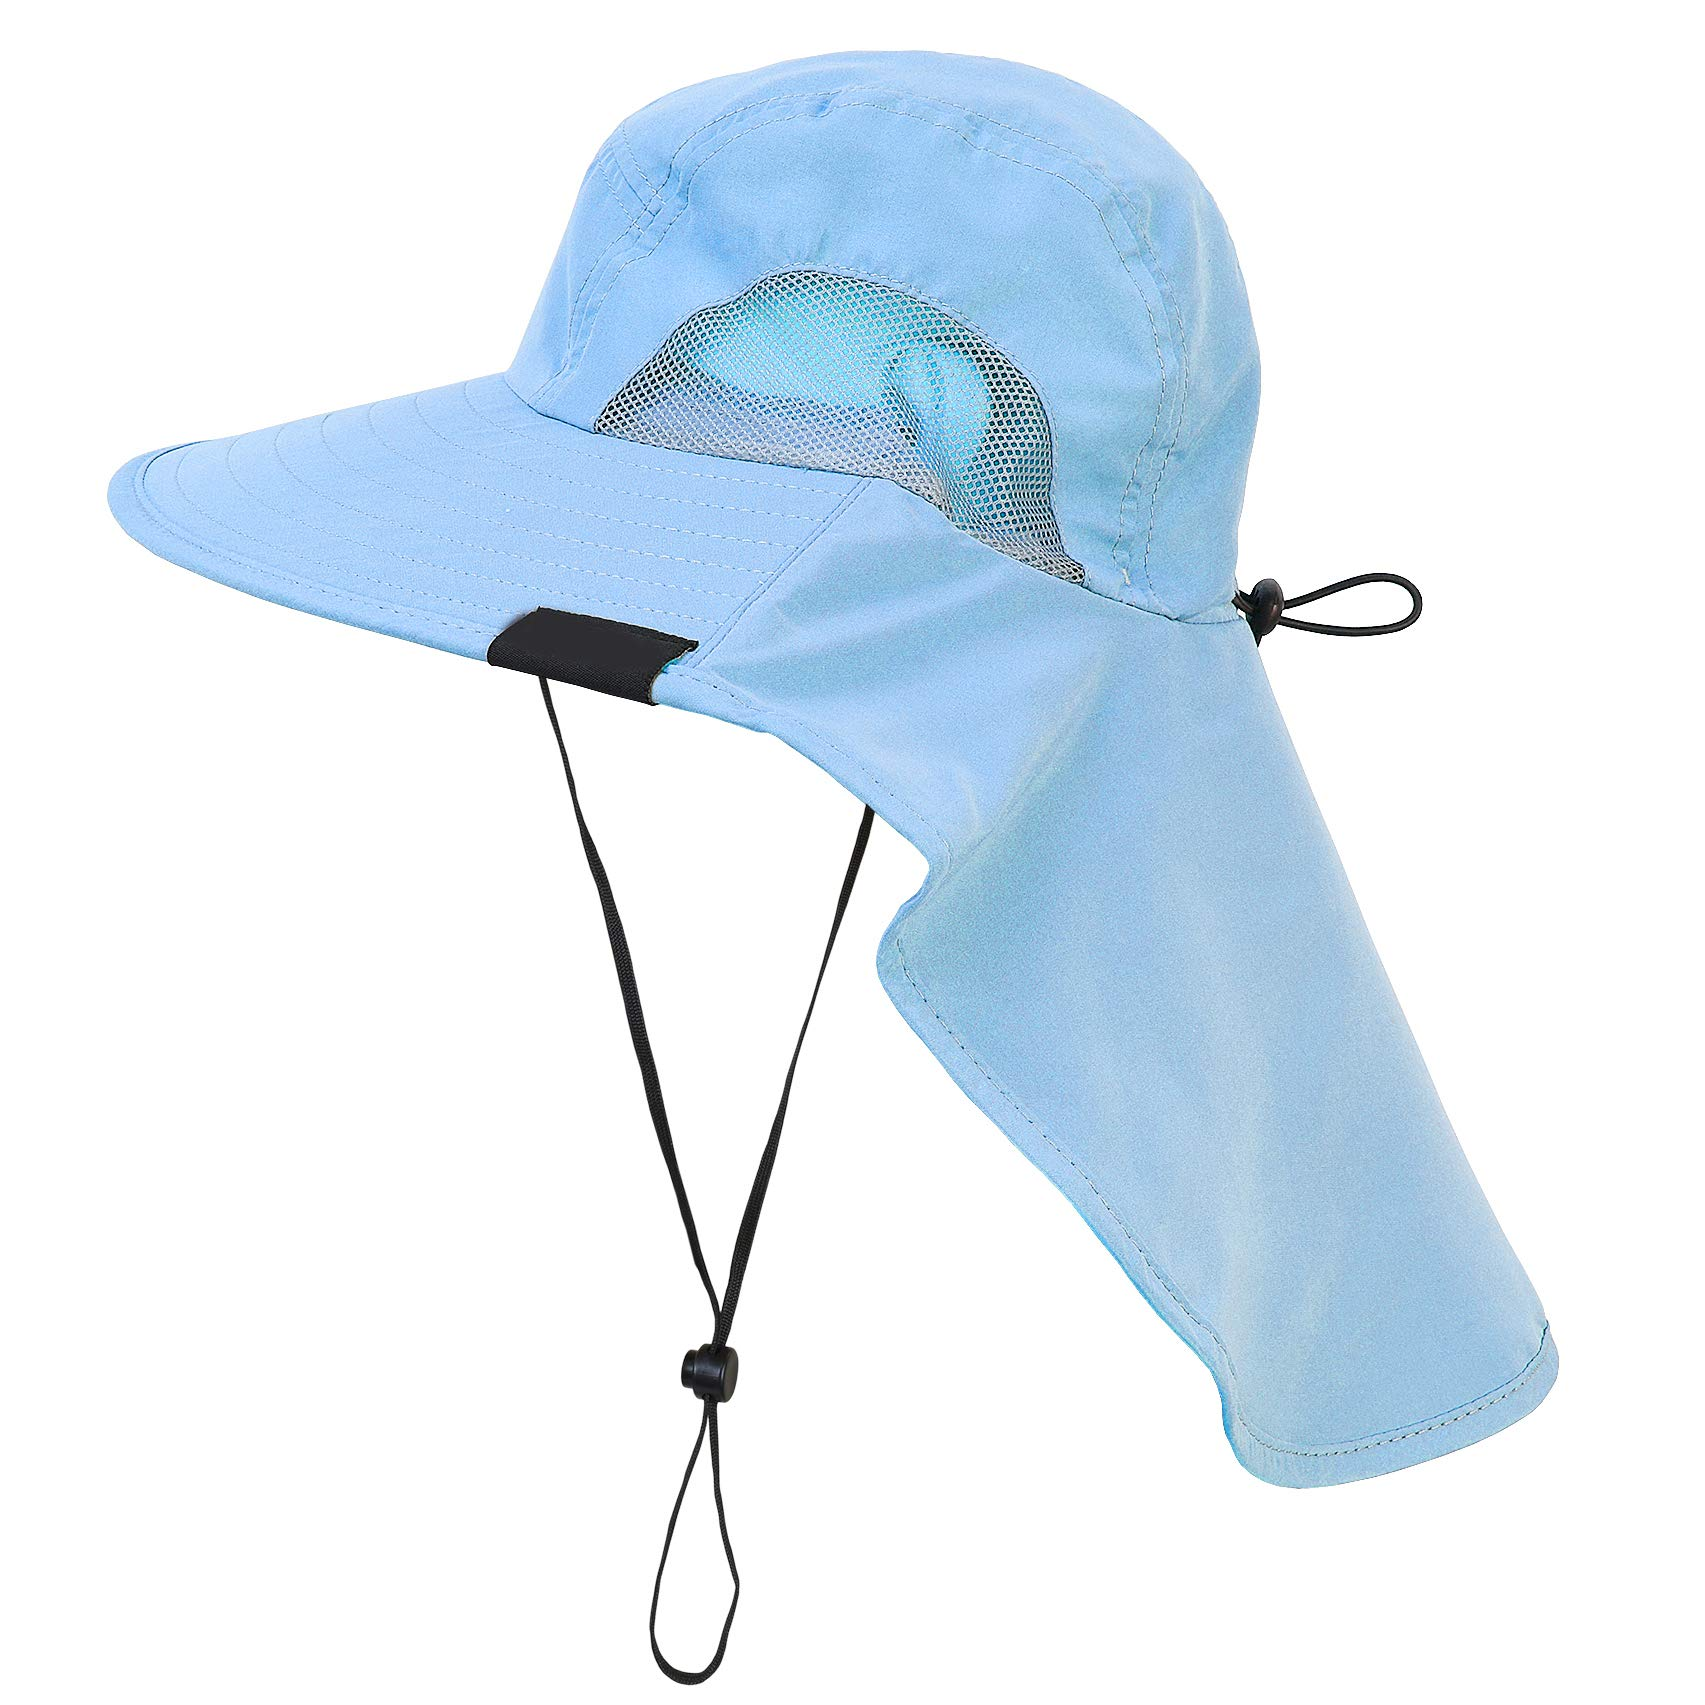 ae2ec04a50b409 Tirrinia Outdoor Sun Protection Fishing Cap with Neck Flap, Wide Brim Sun  Hat for Travel